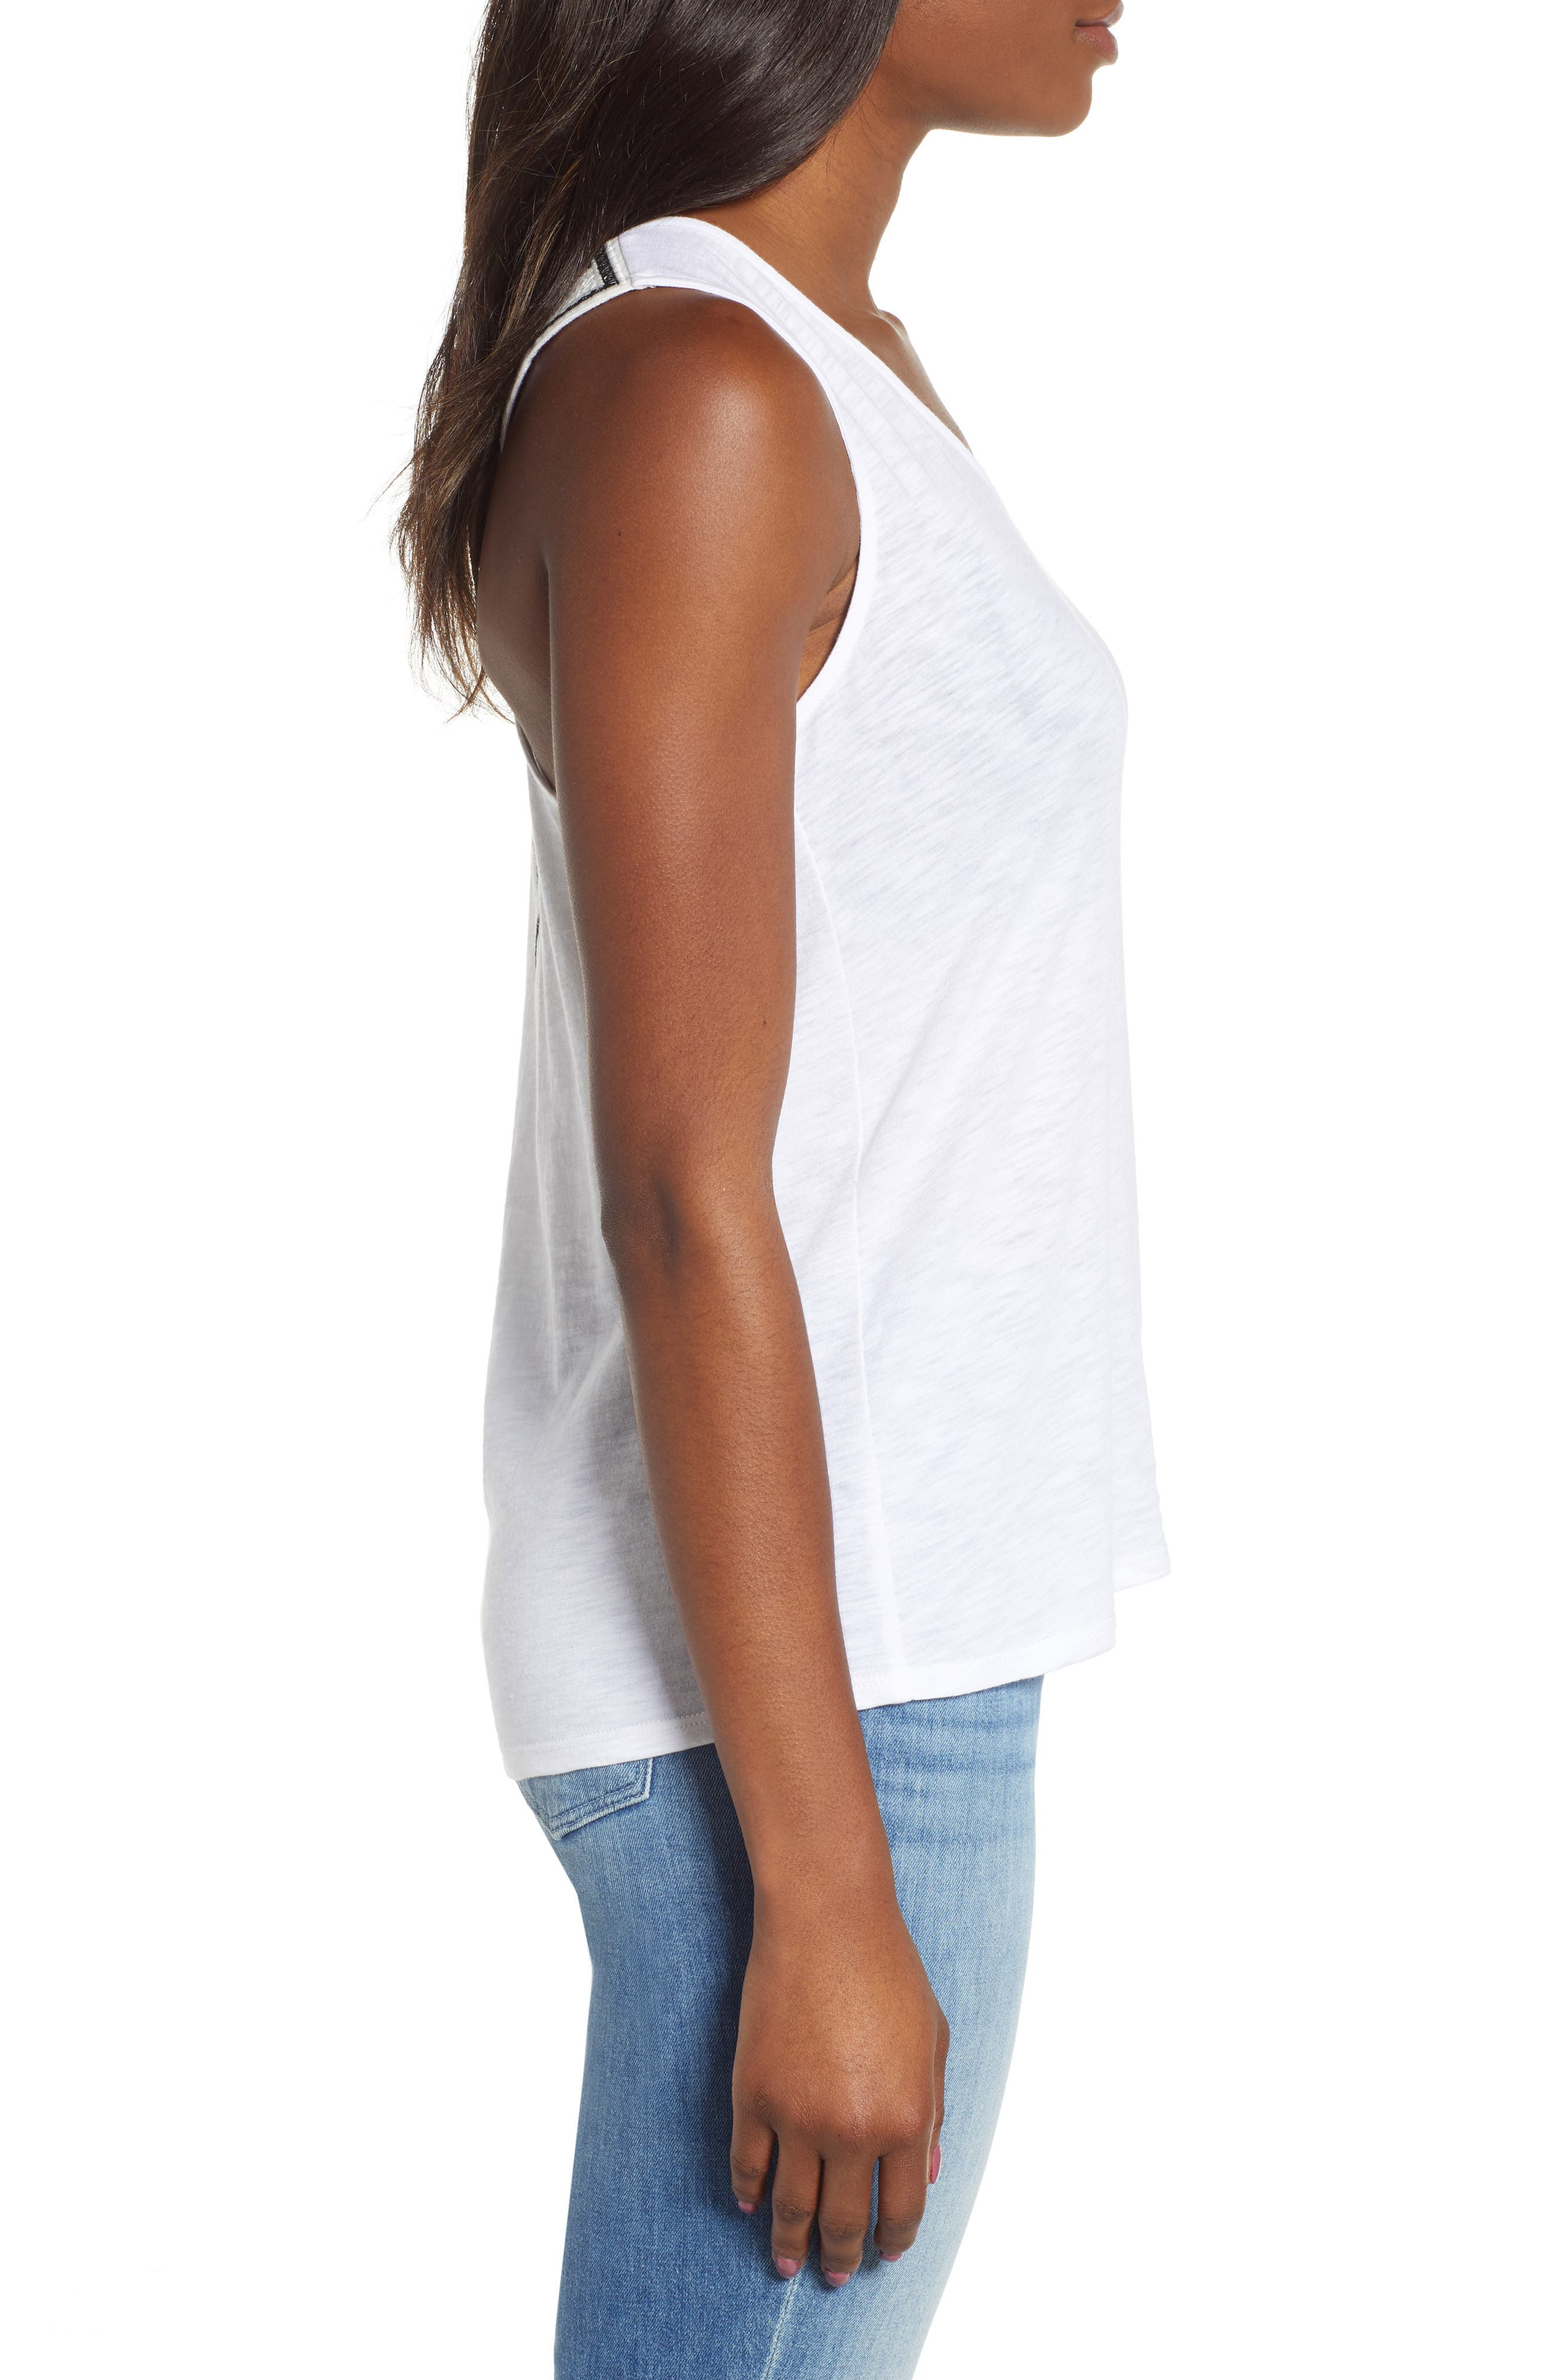 x Hi Sugarplum! Malibu Embroidered Racerback Tank Top,                             Alternate thumbnail 3, color,                             WHITE W/ BLACK/ WHITE